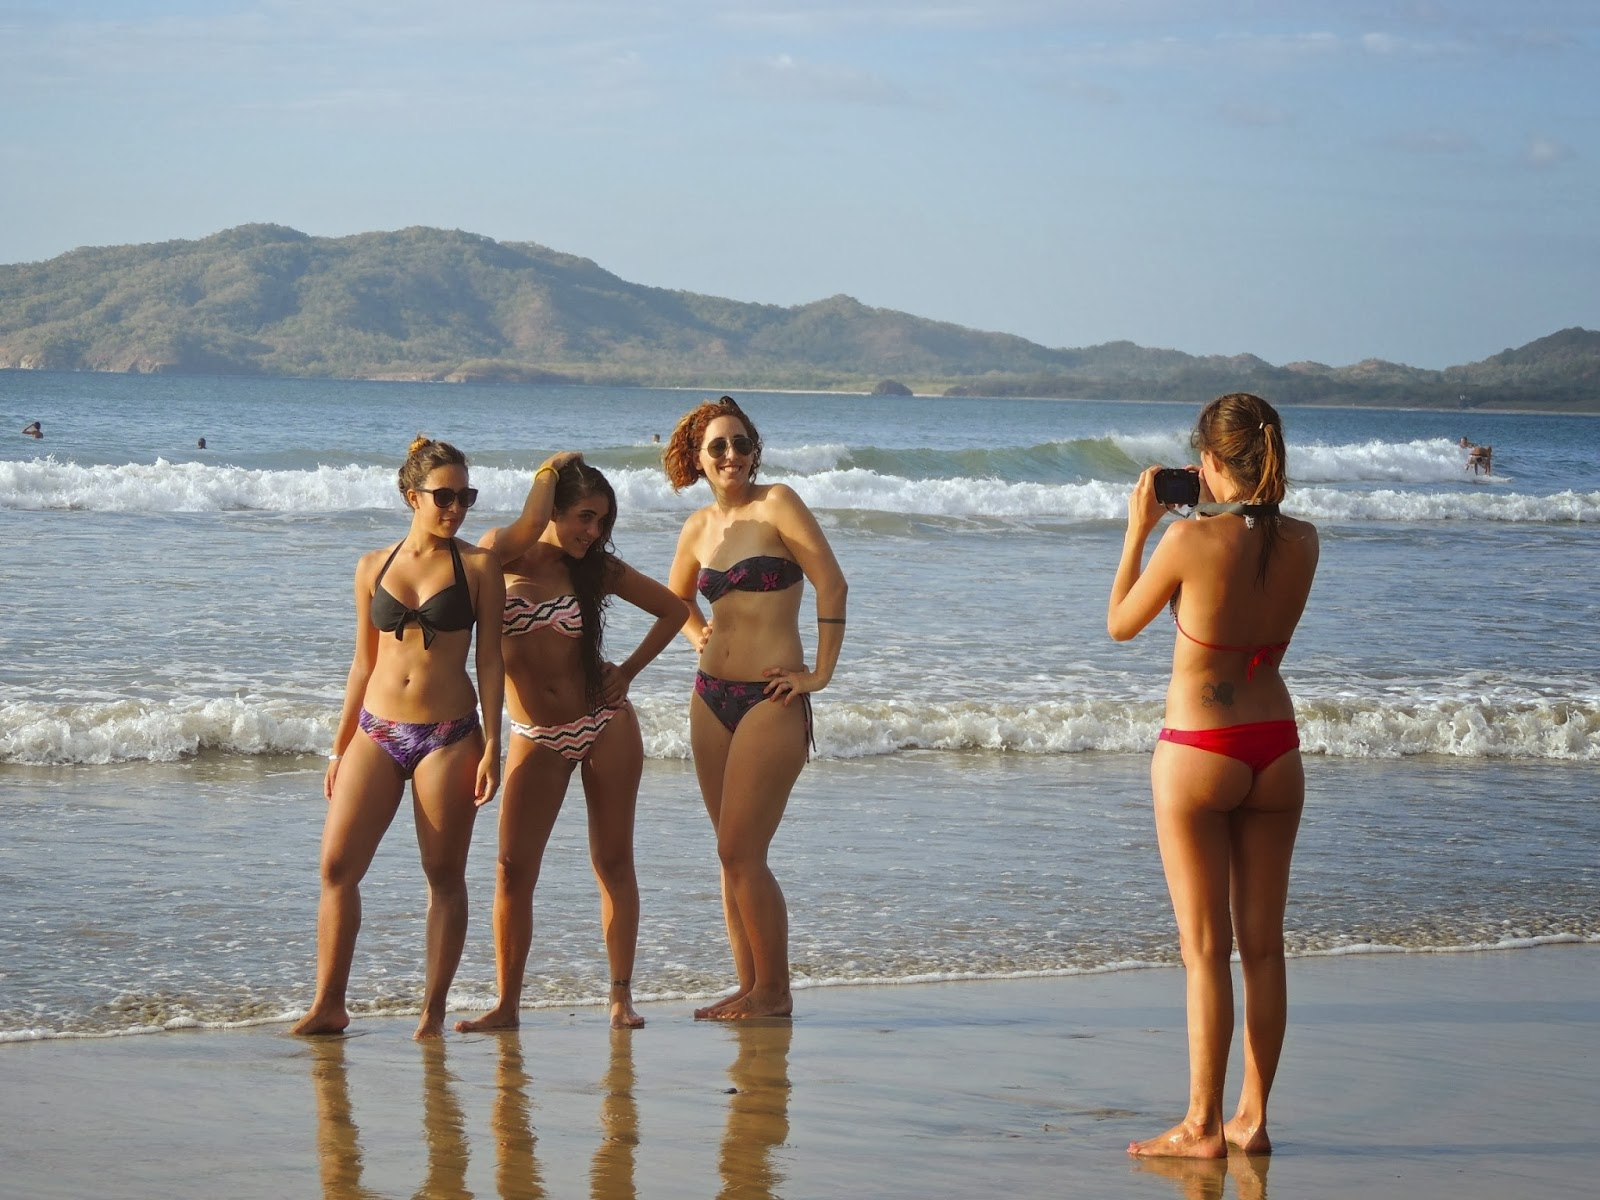 Young Women Taking A Group Photo On The Beach